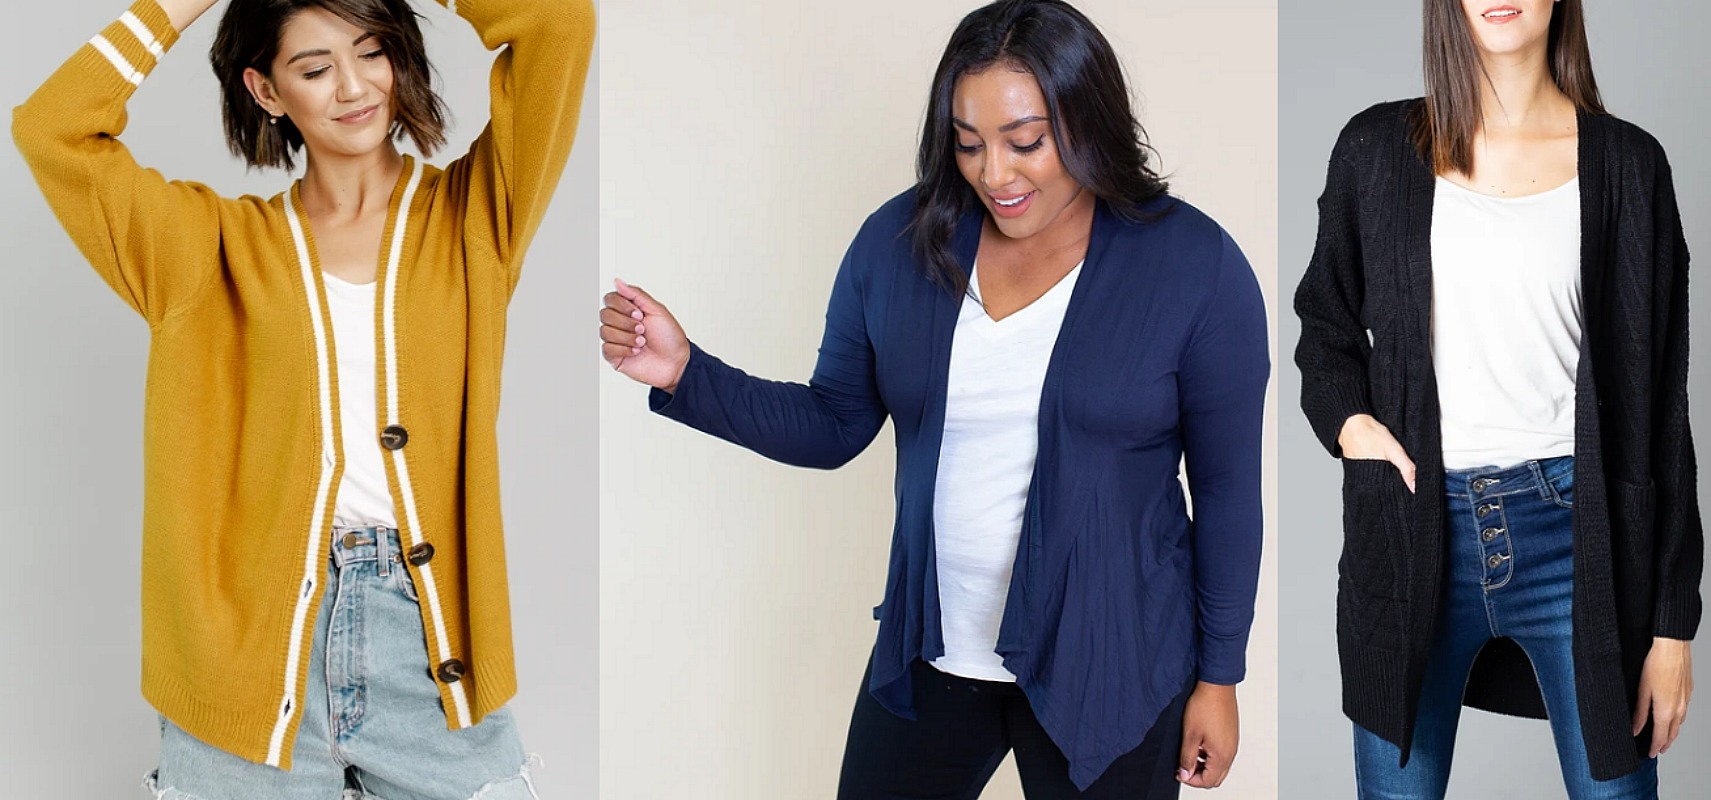 Cardigans as Low as $14.95 + FREE  Shipping – Limited Time!